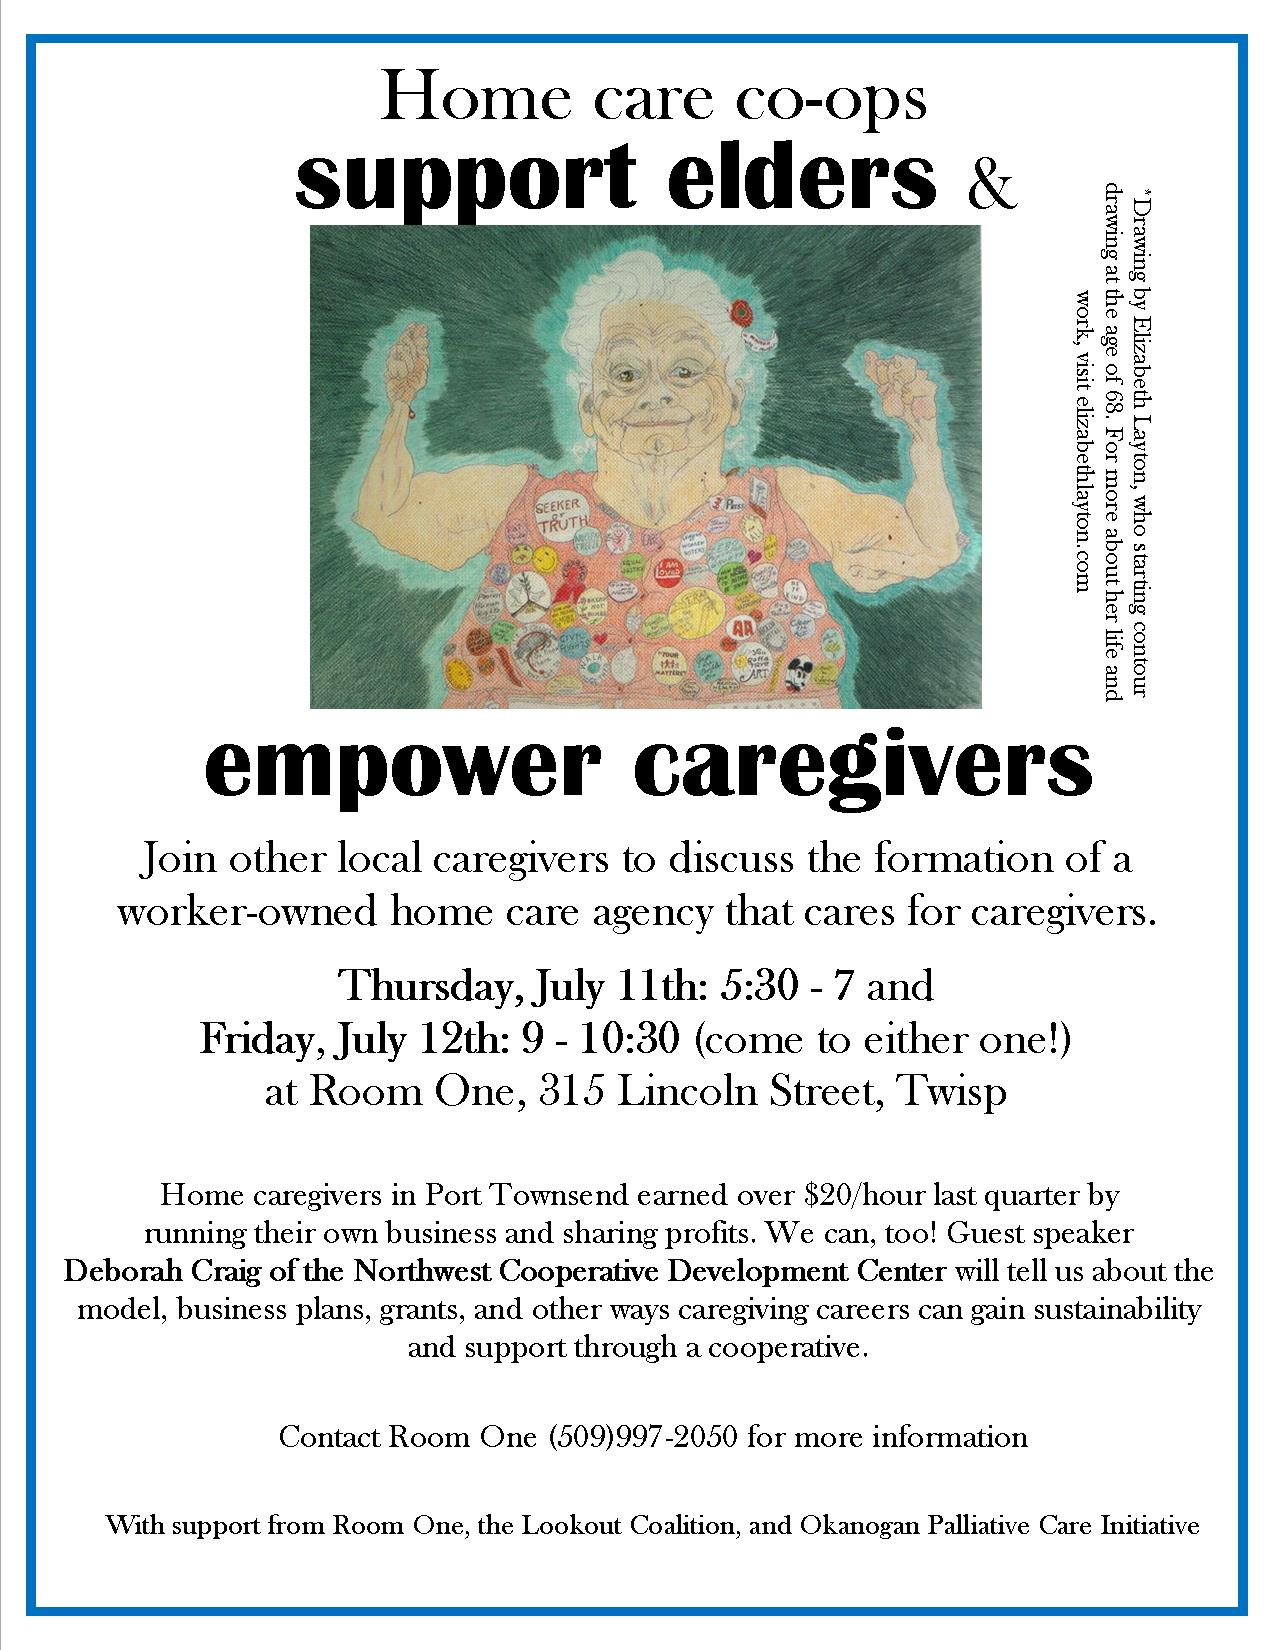 MV Caregive Co-op Event outreach flyer 2019_v2.jpg